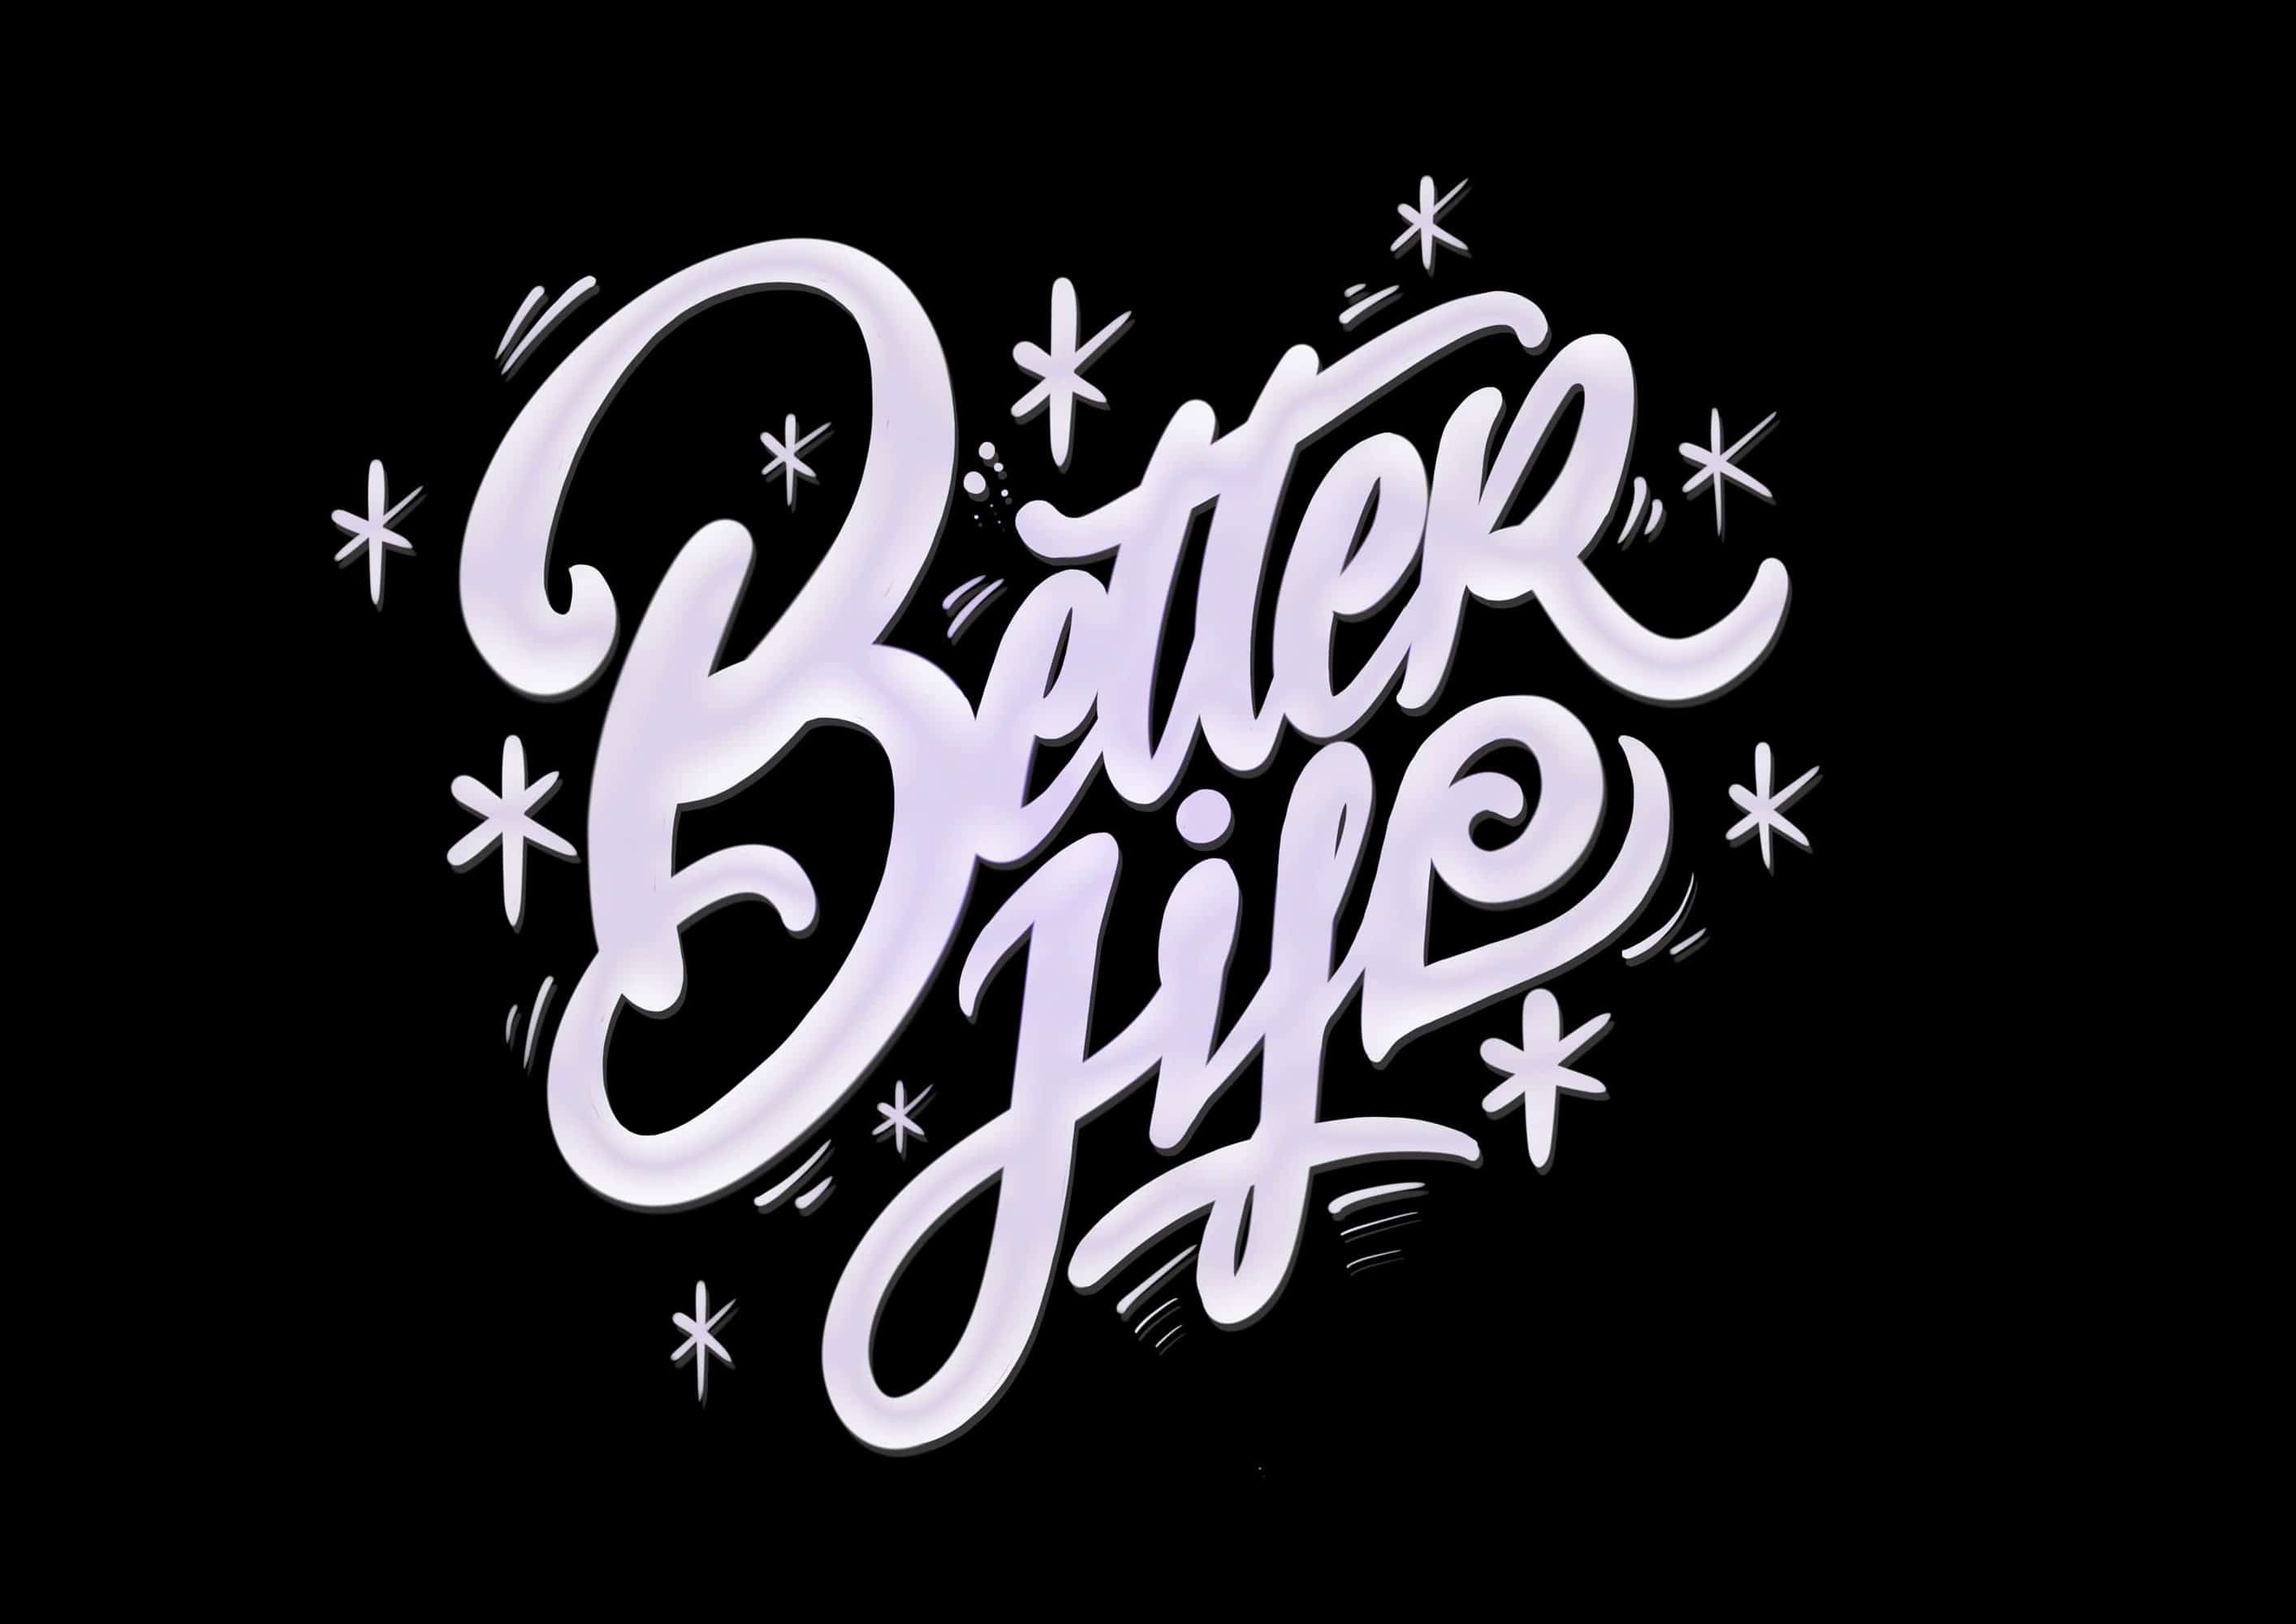 Better Life by Guillaume Laserson @ friendmade.fm